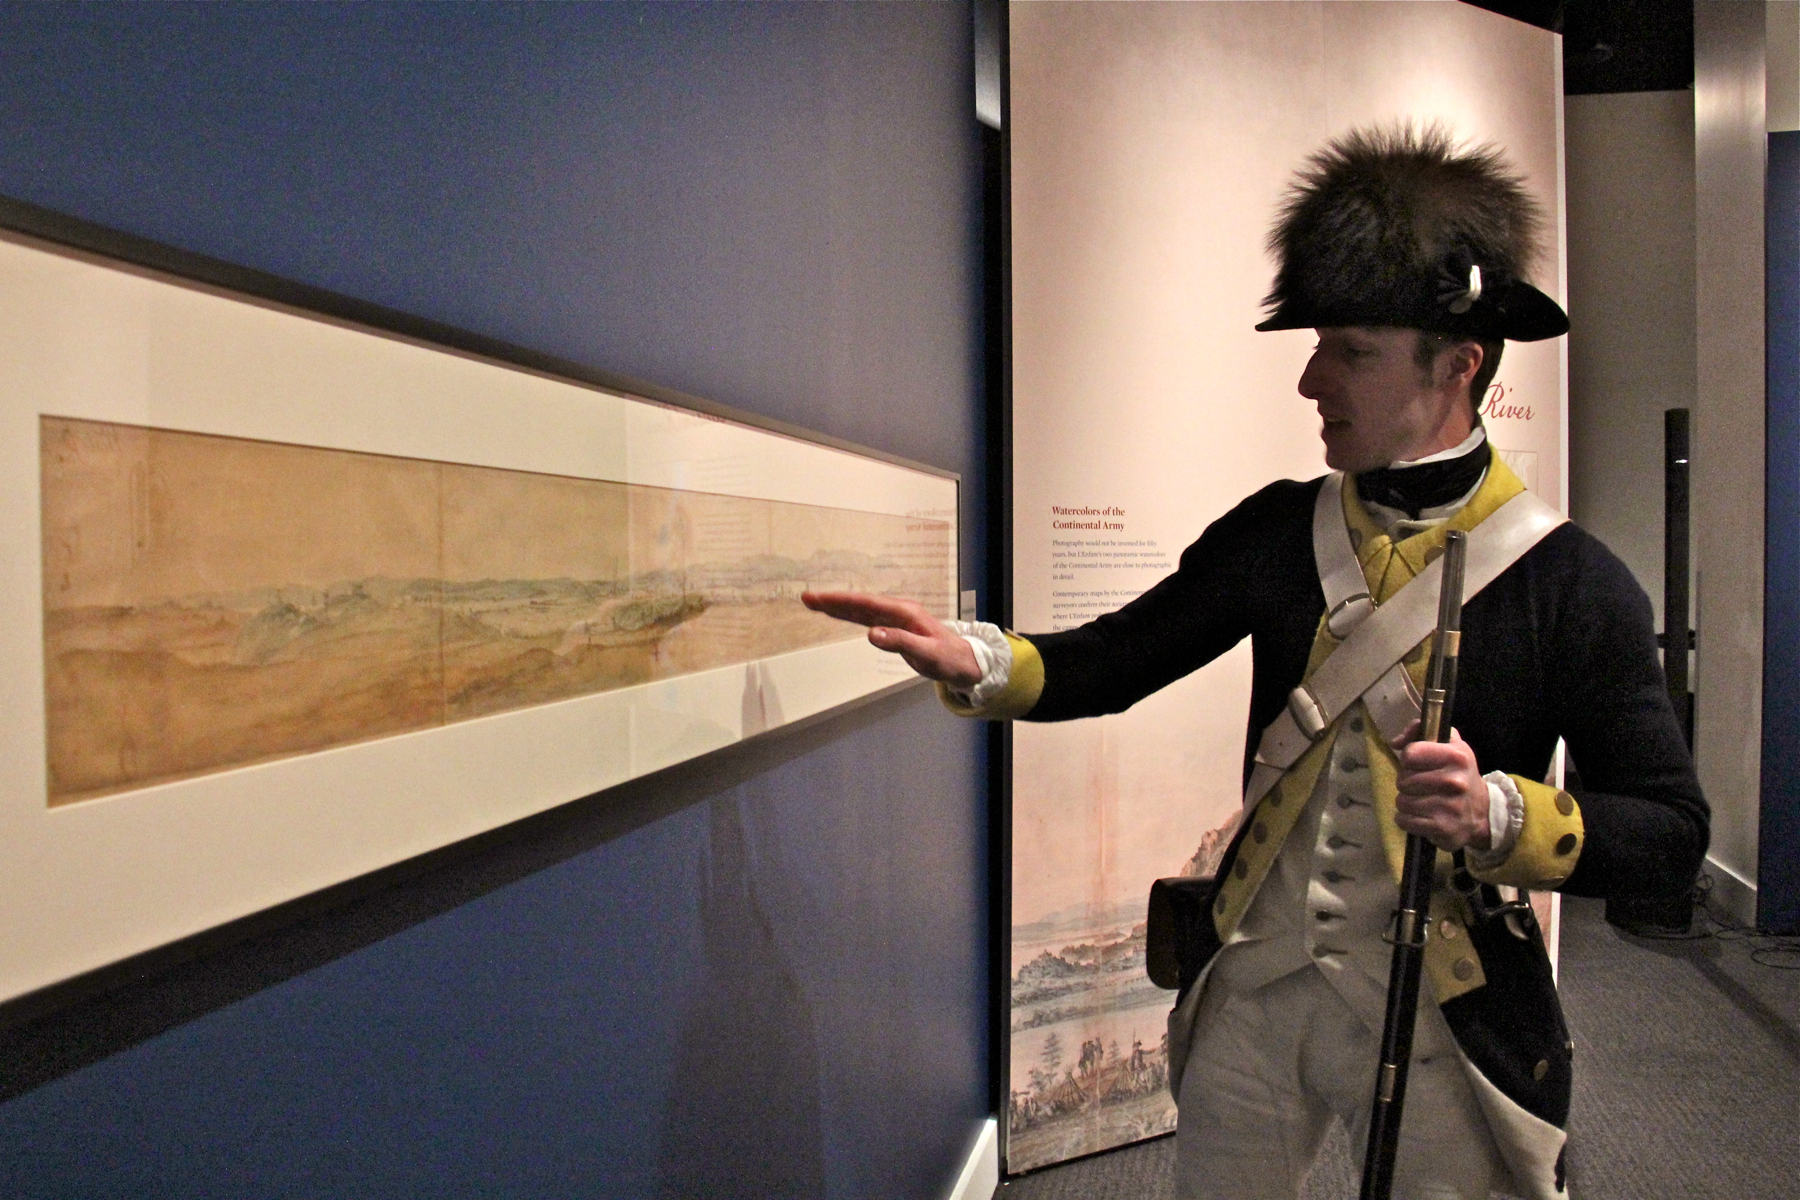 revolutionary war army comes to life in newly discovered